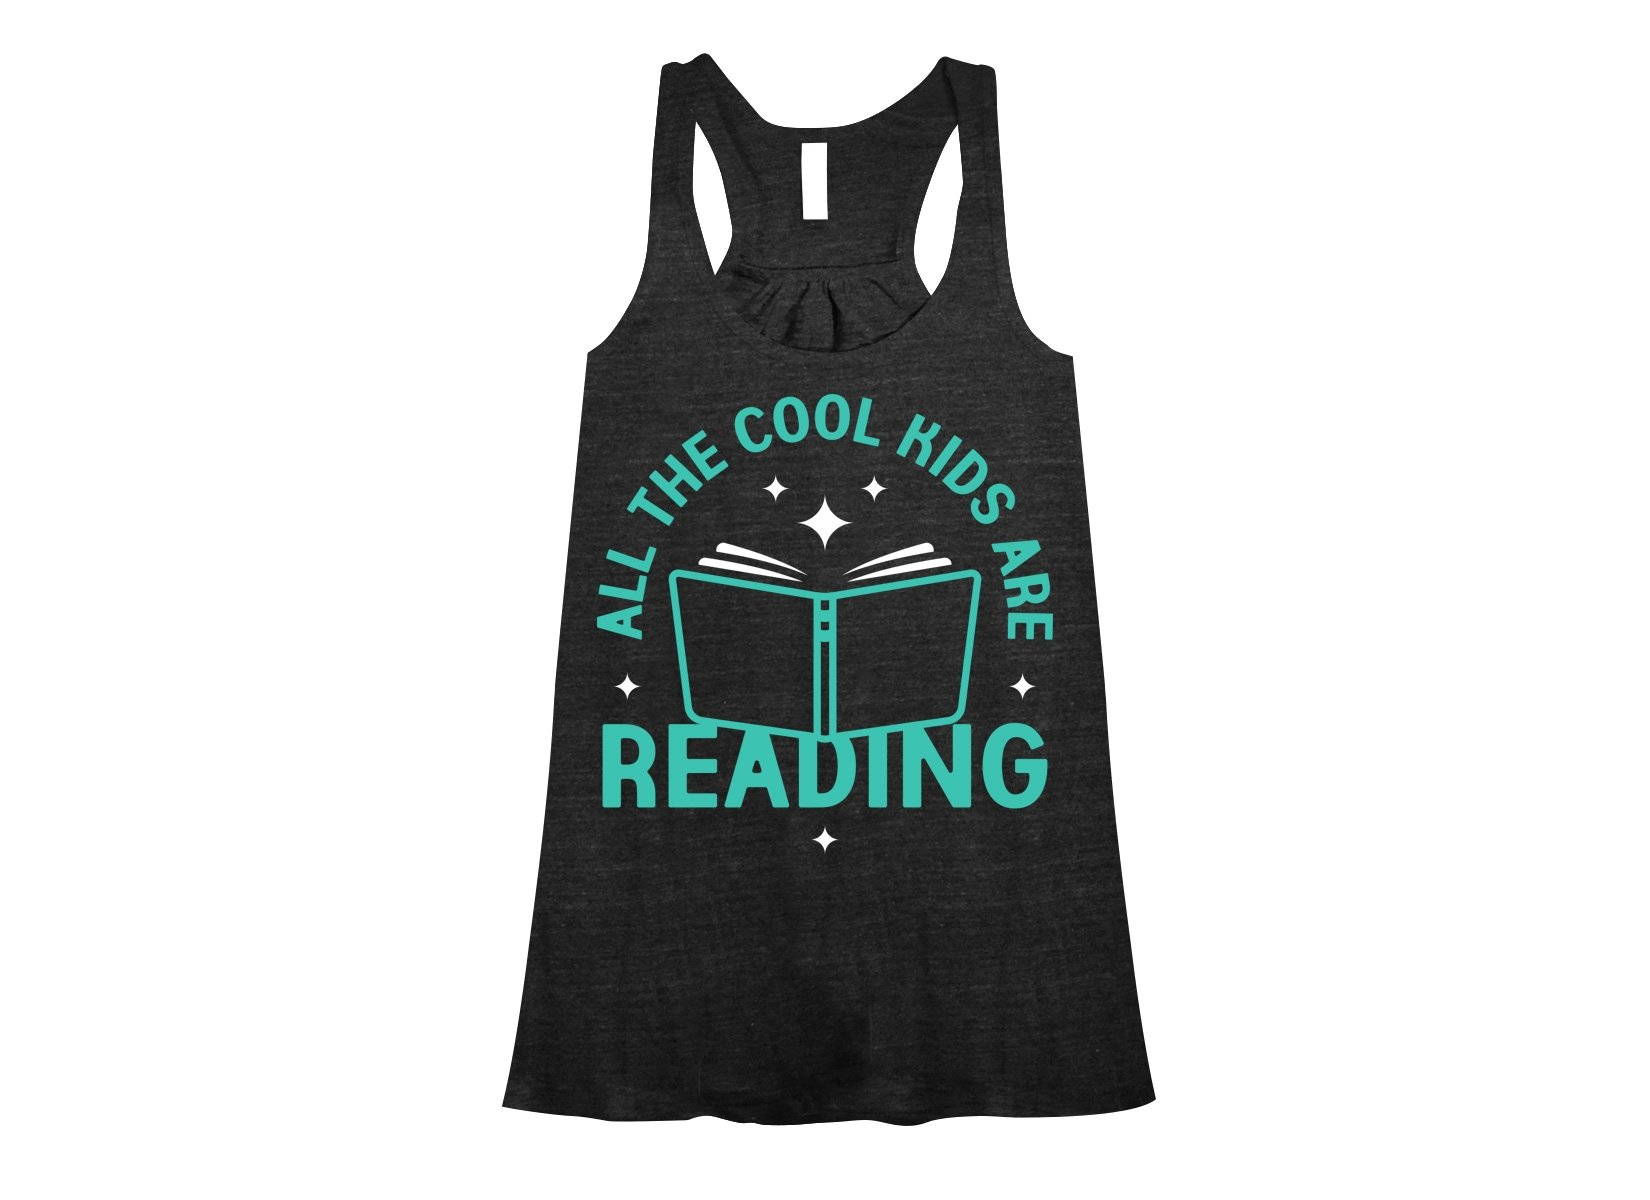 All The Cool Kids Are Reading on Womens Tanks T-Shirt